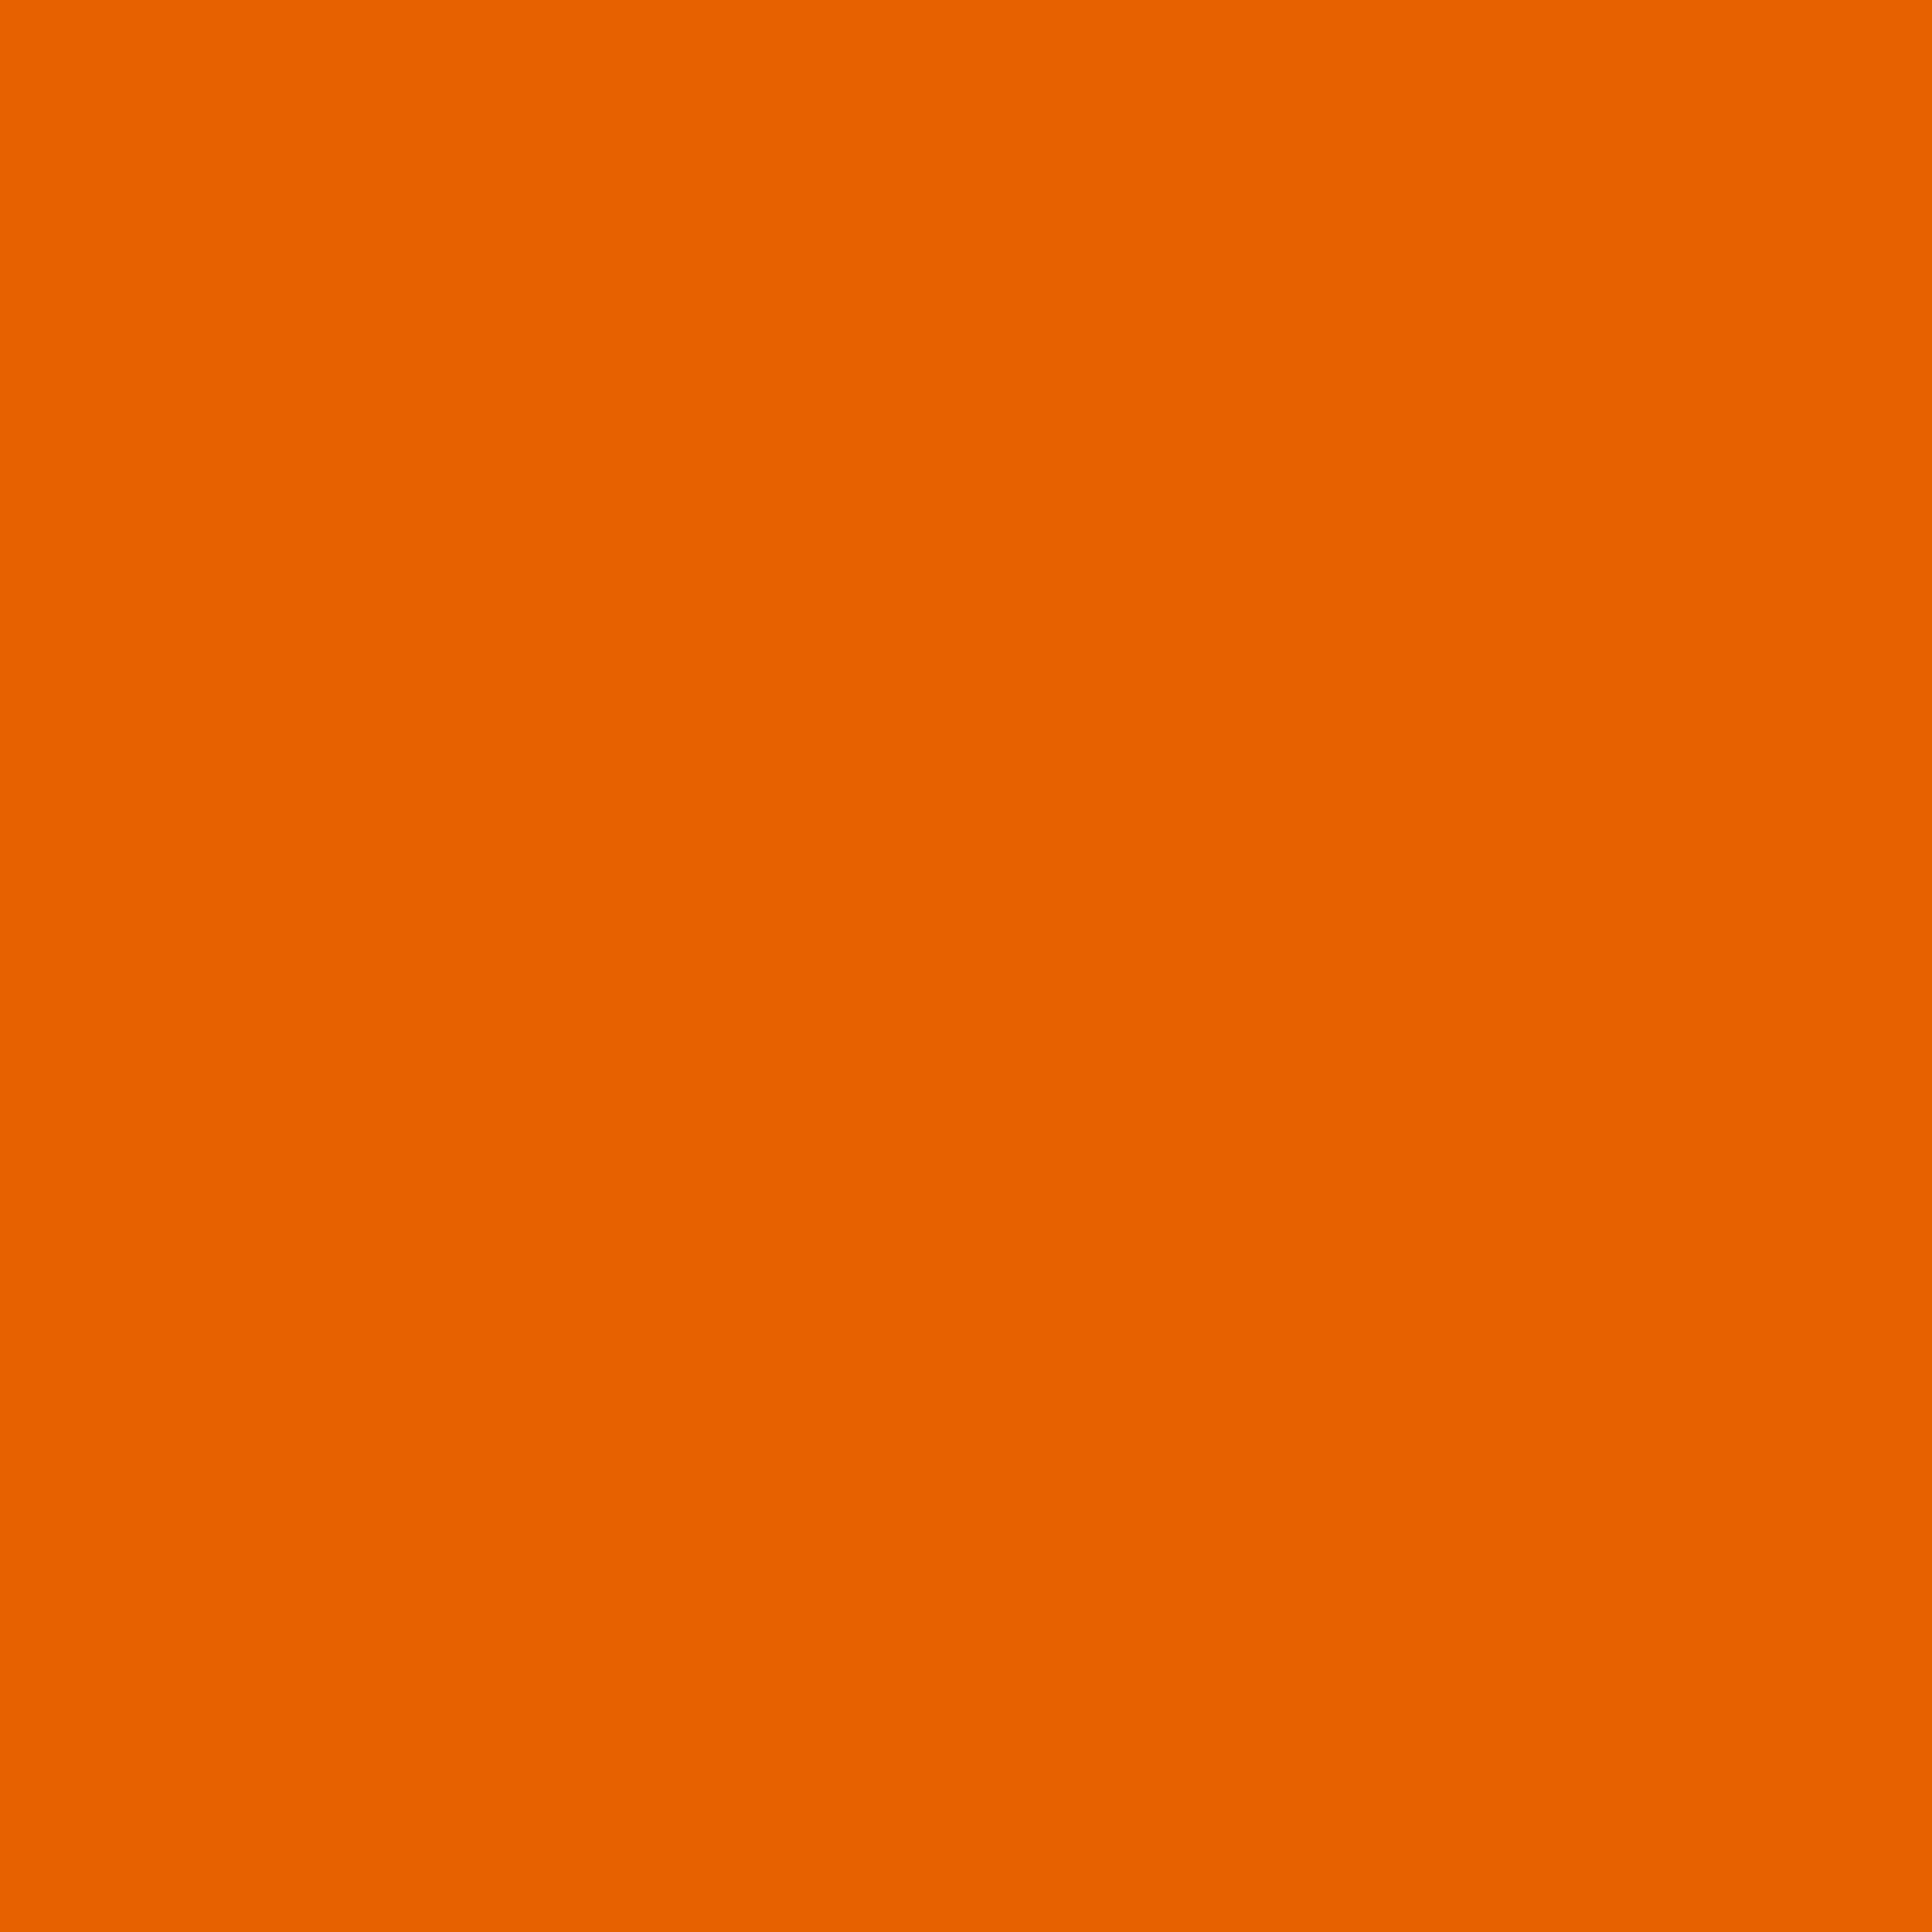 3600x3600 Spanish Orange Solid Color Background